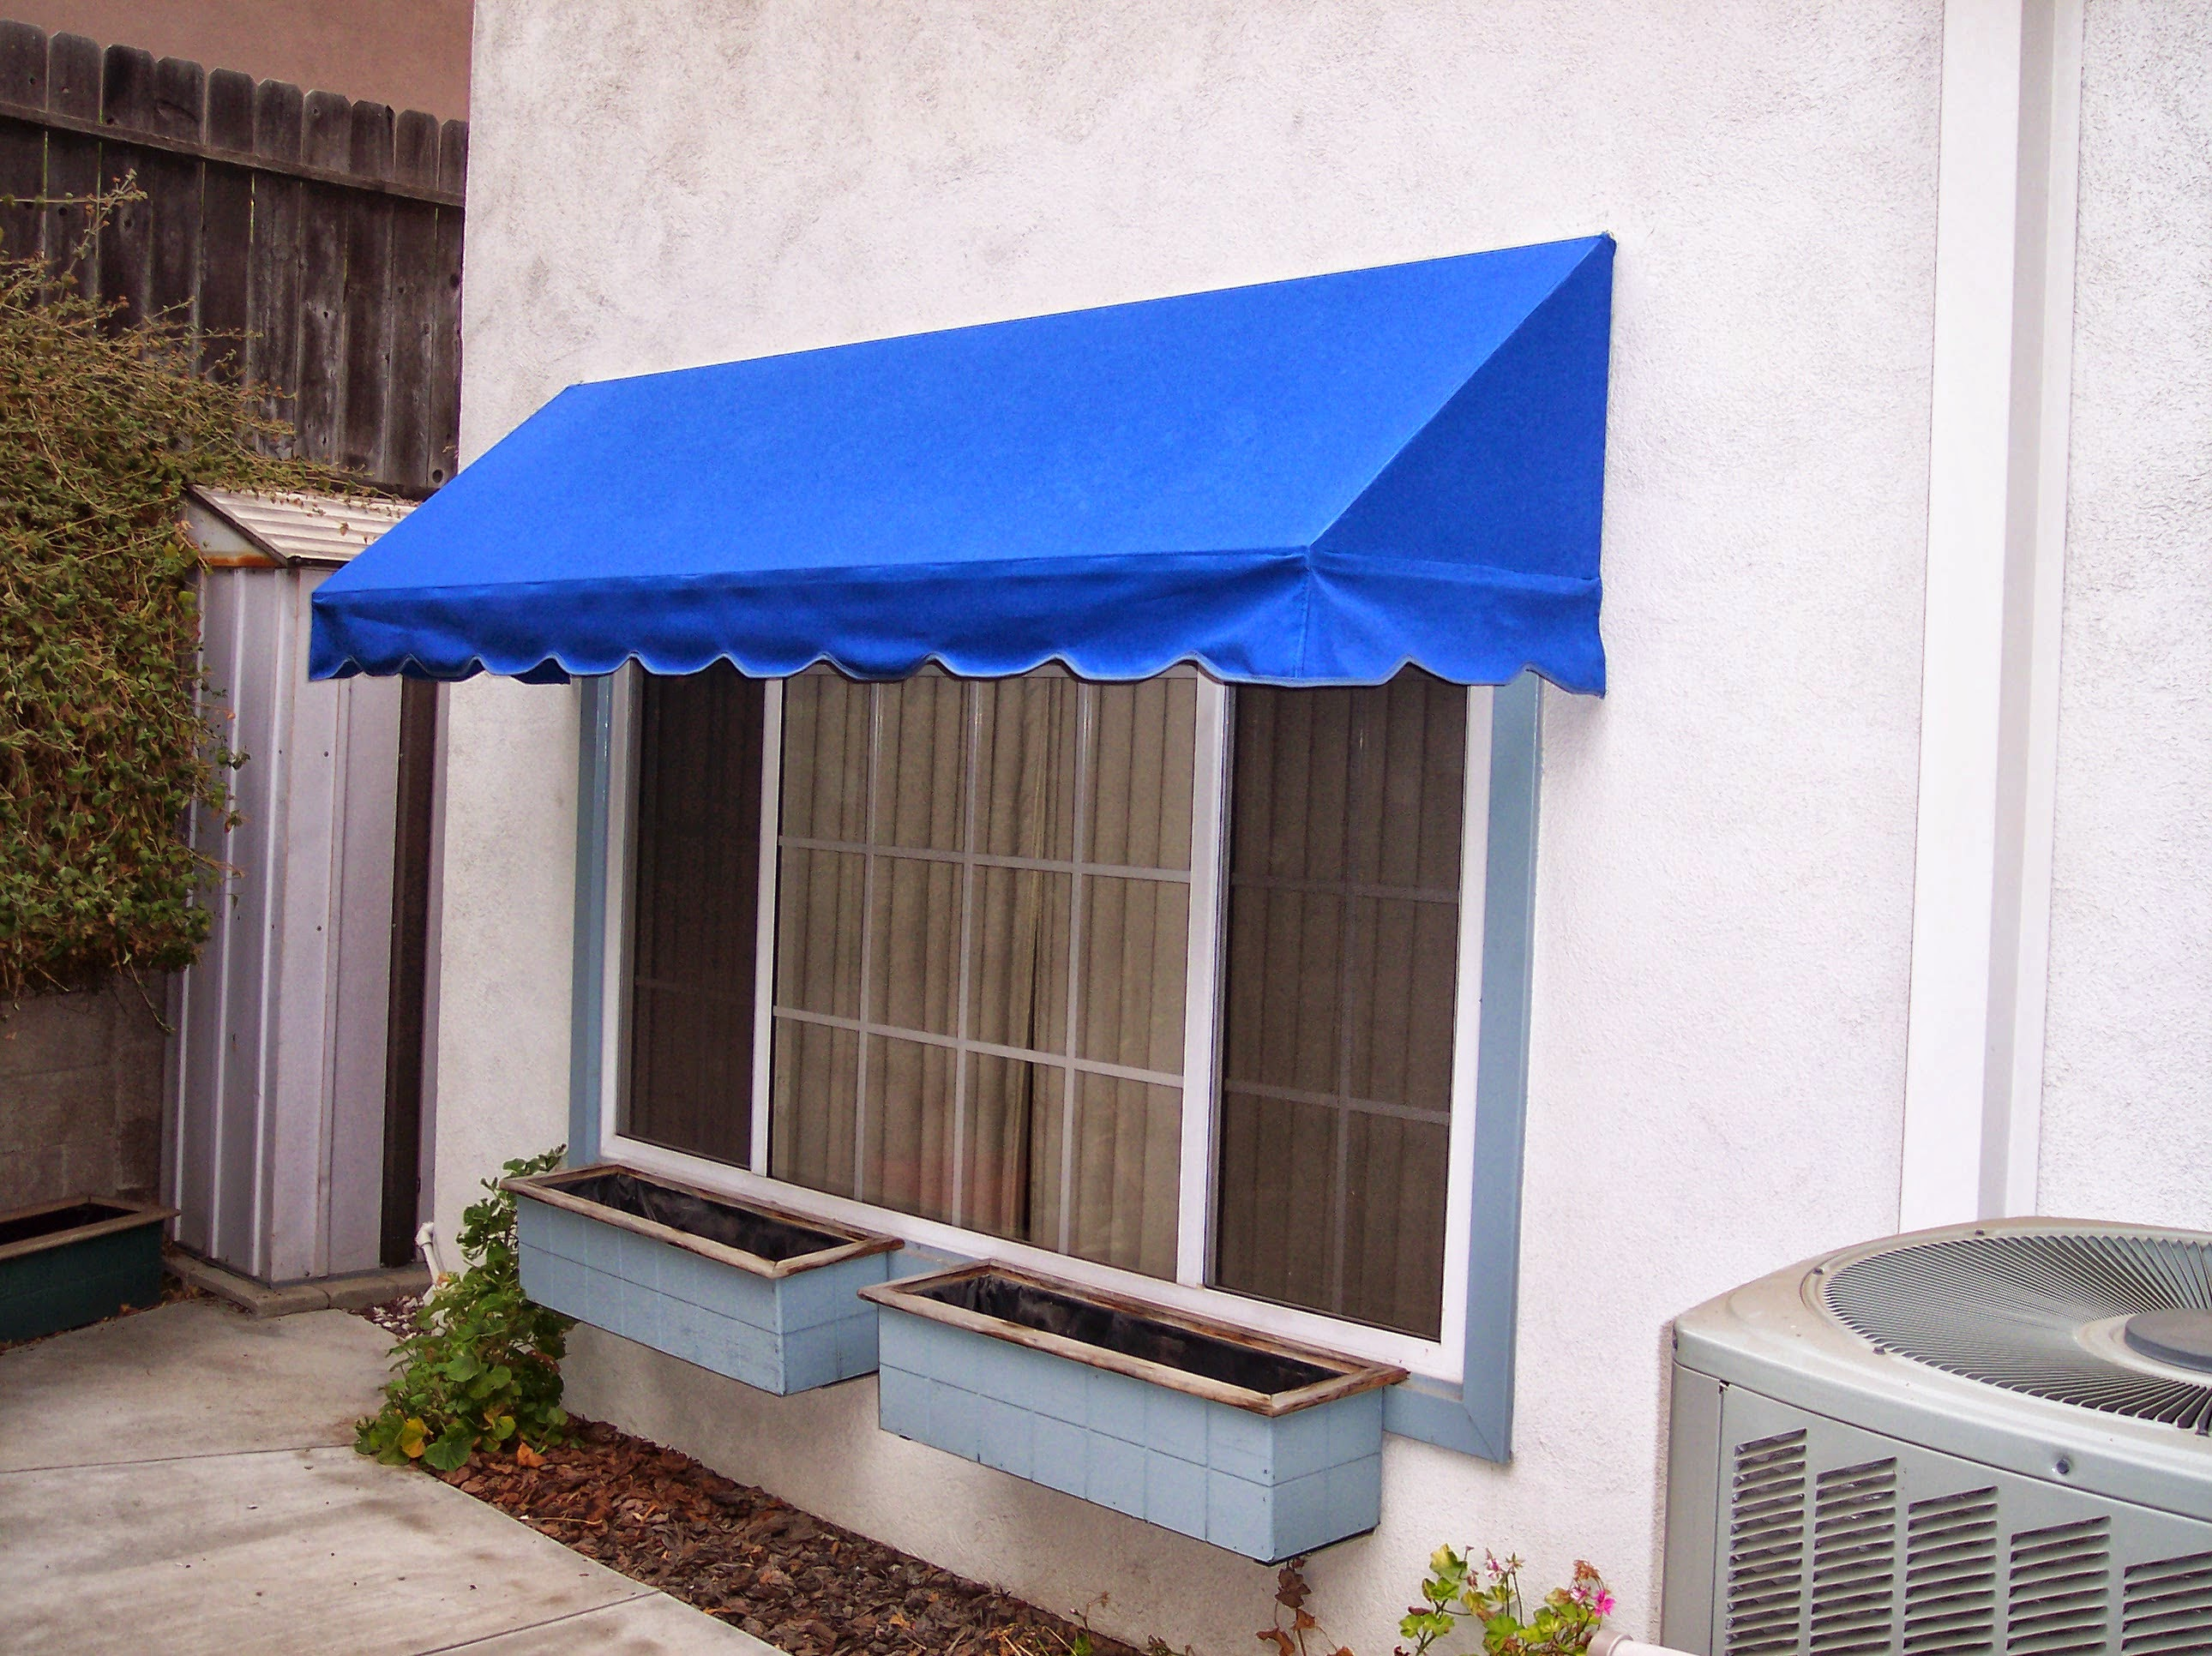 san awnings freestanding antonio awning covers carport cantilever patio uncategorized barbecue cover